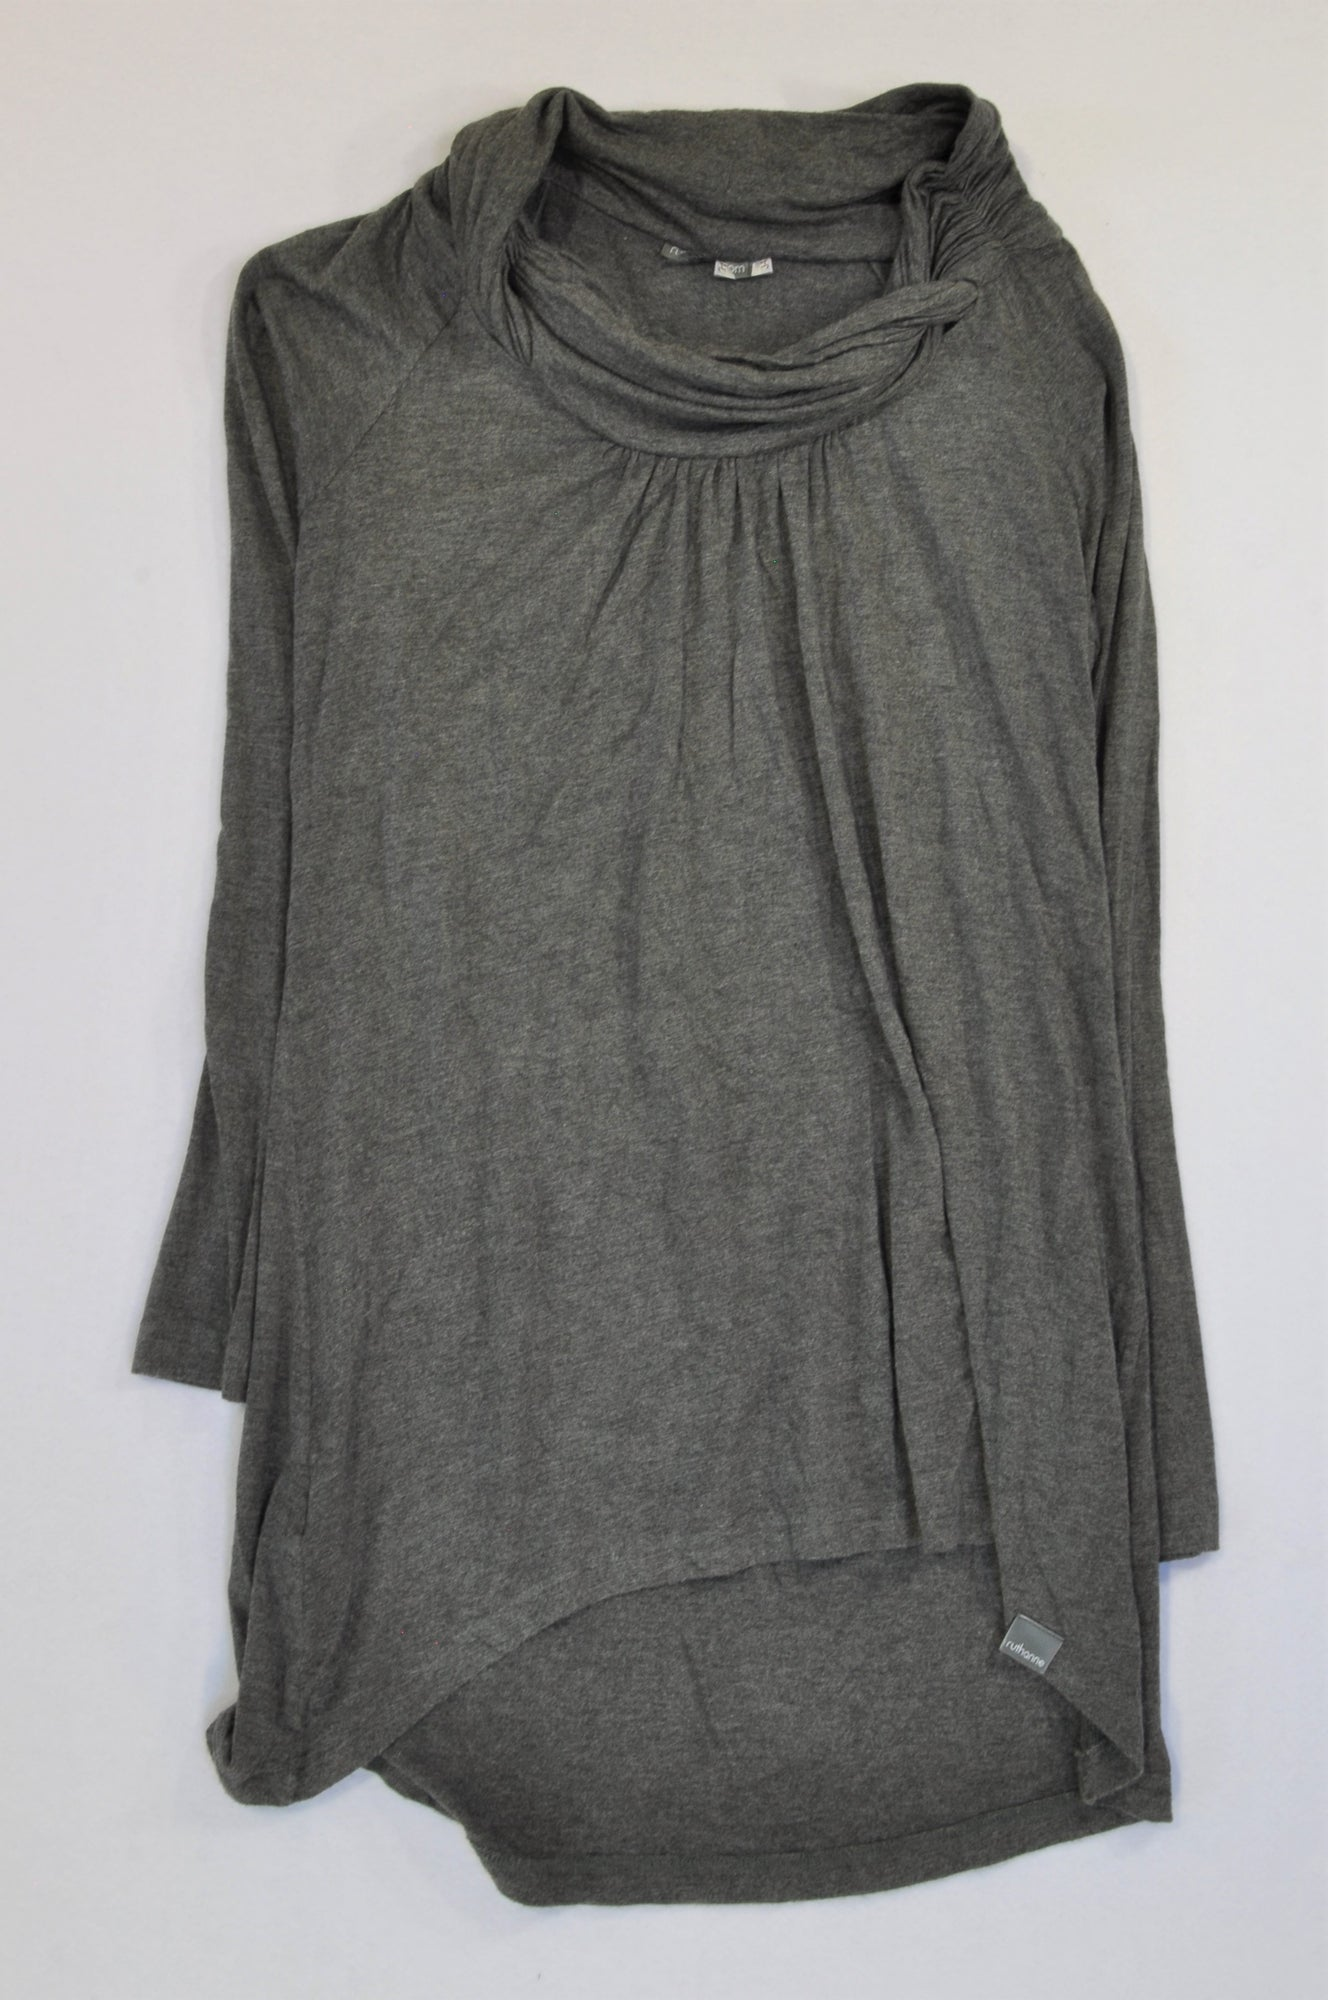 Ruthanne Grey High Neck Long Sleeve Top Women Size 34